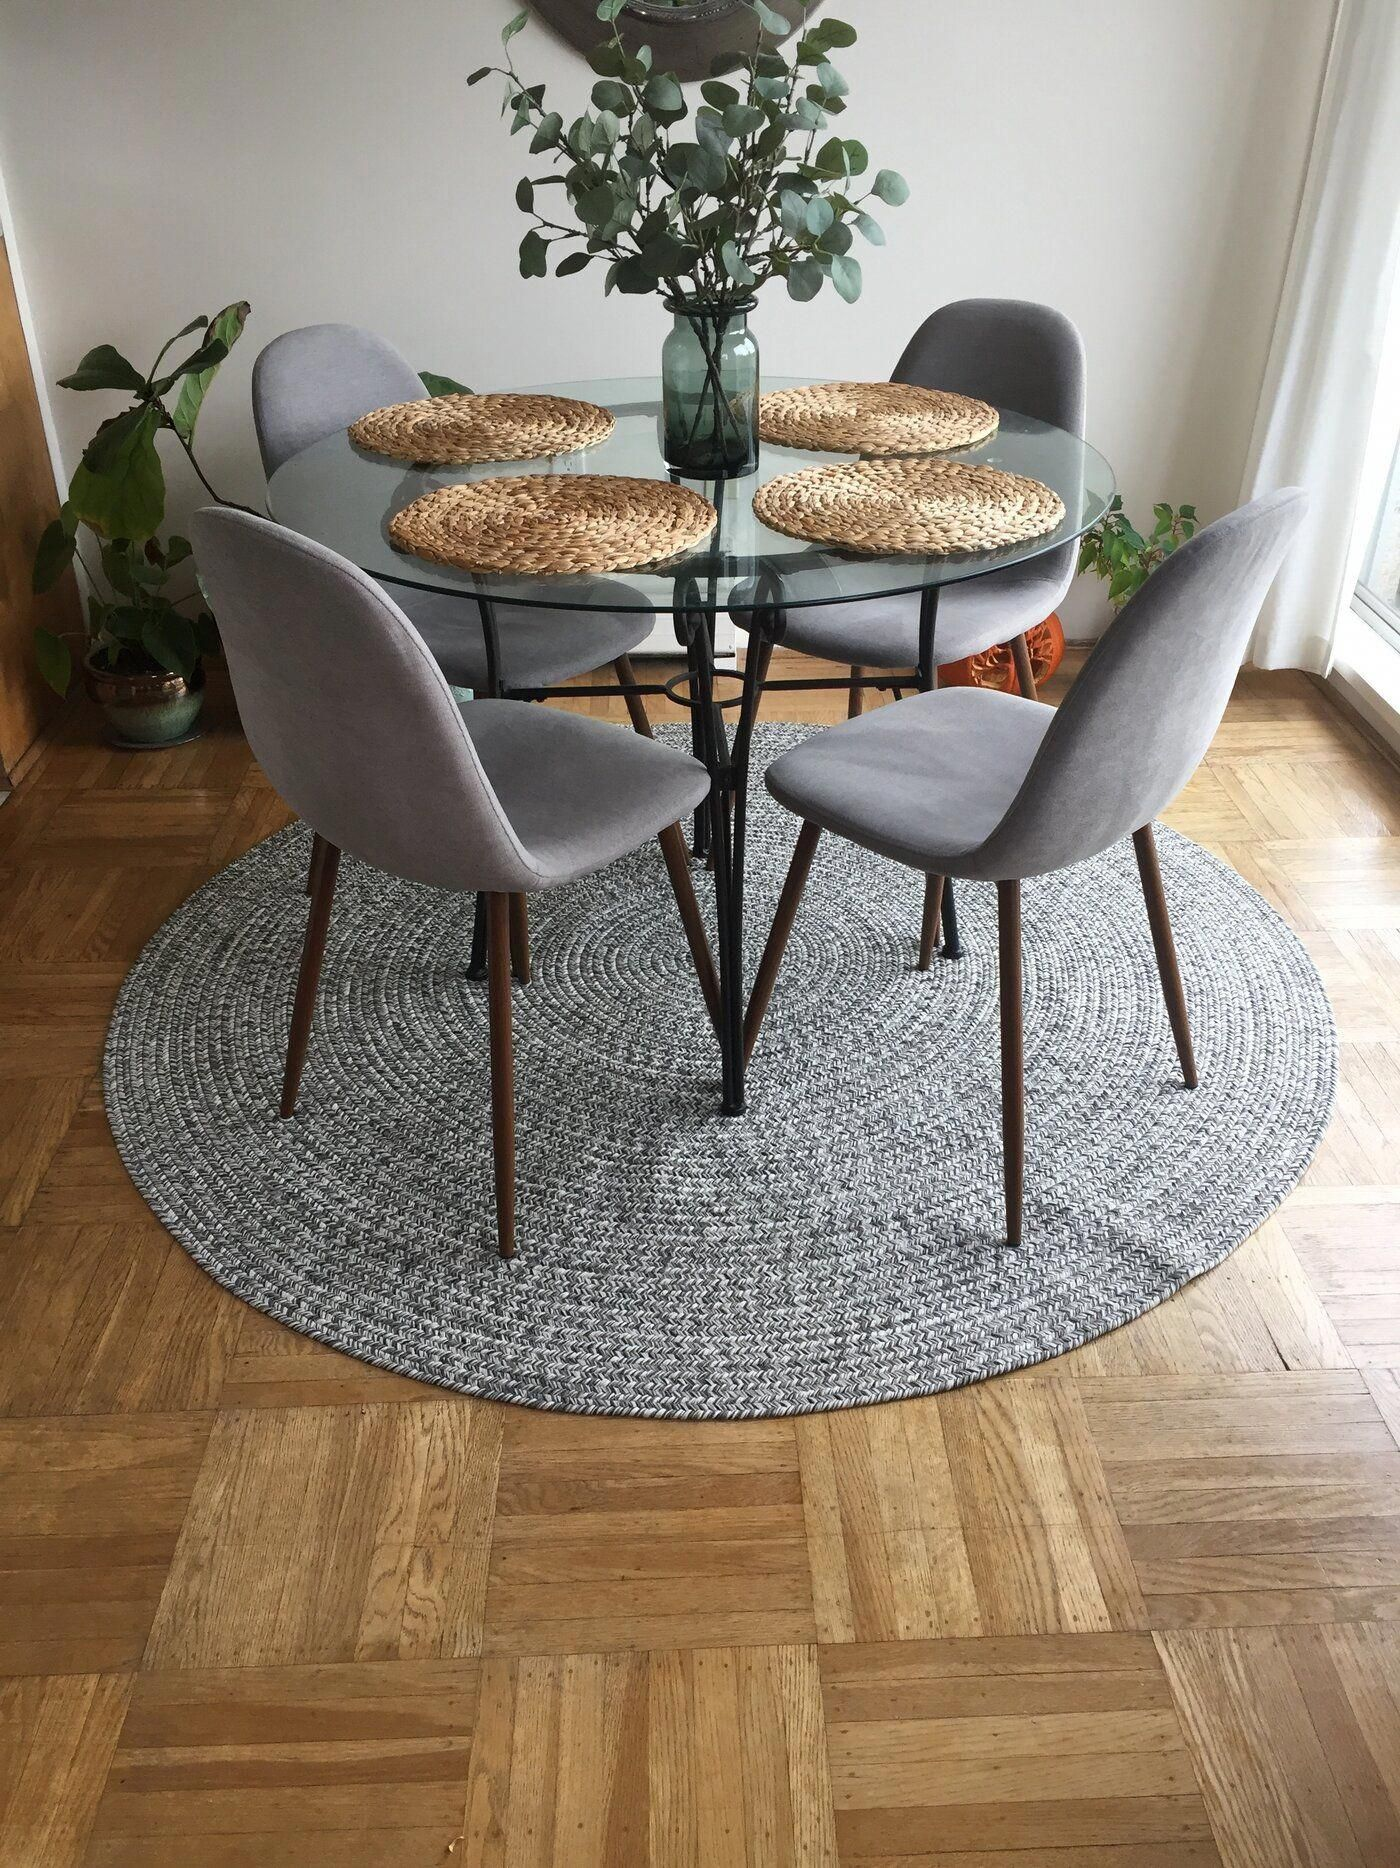 Diningroomdecor In 2020 Apartment Dining Room Round Dining Room Dining Room Small